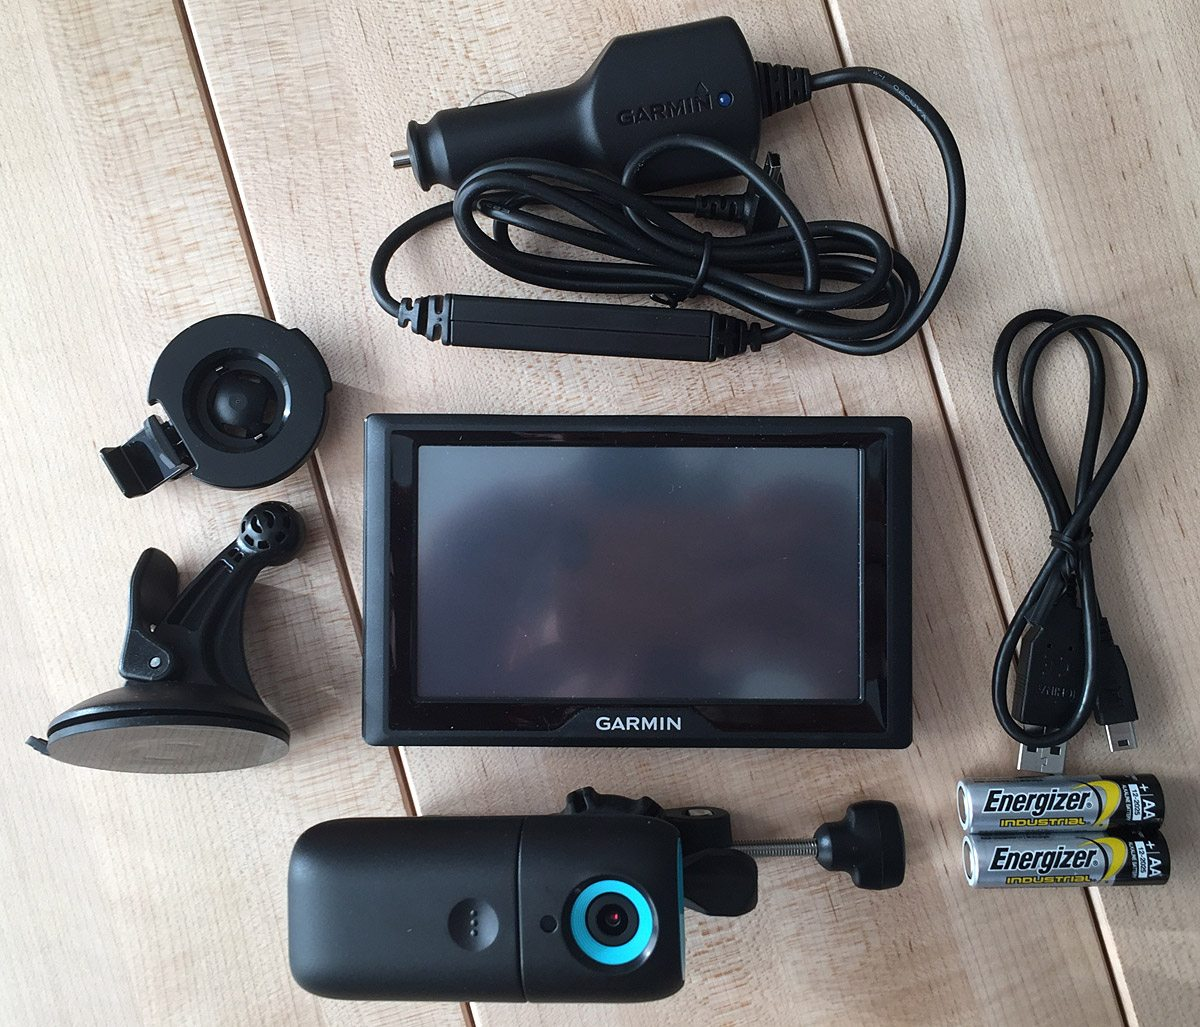 GarminBabyCam-Contents